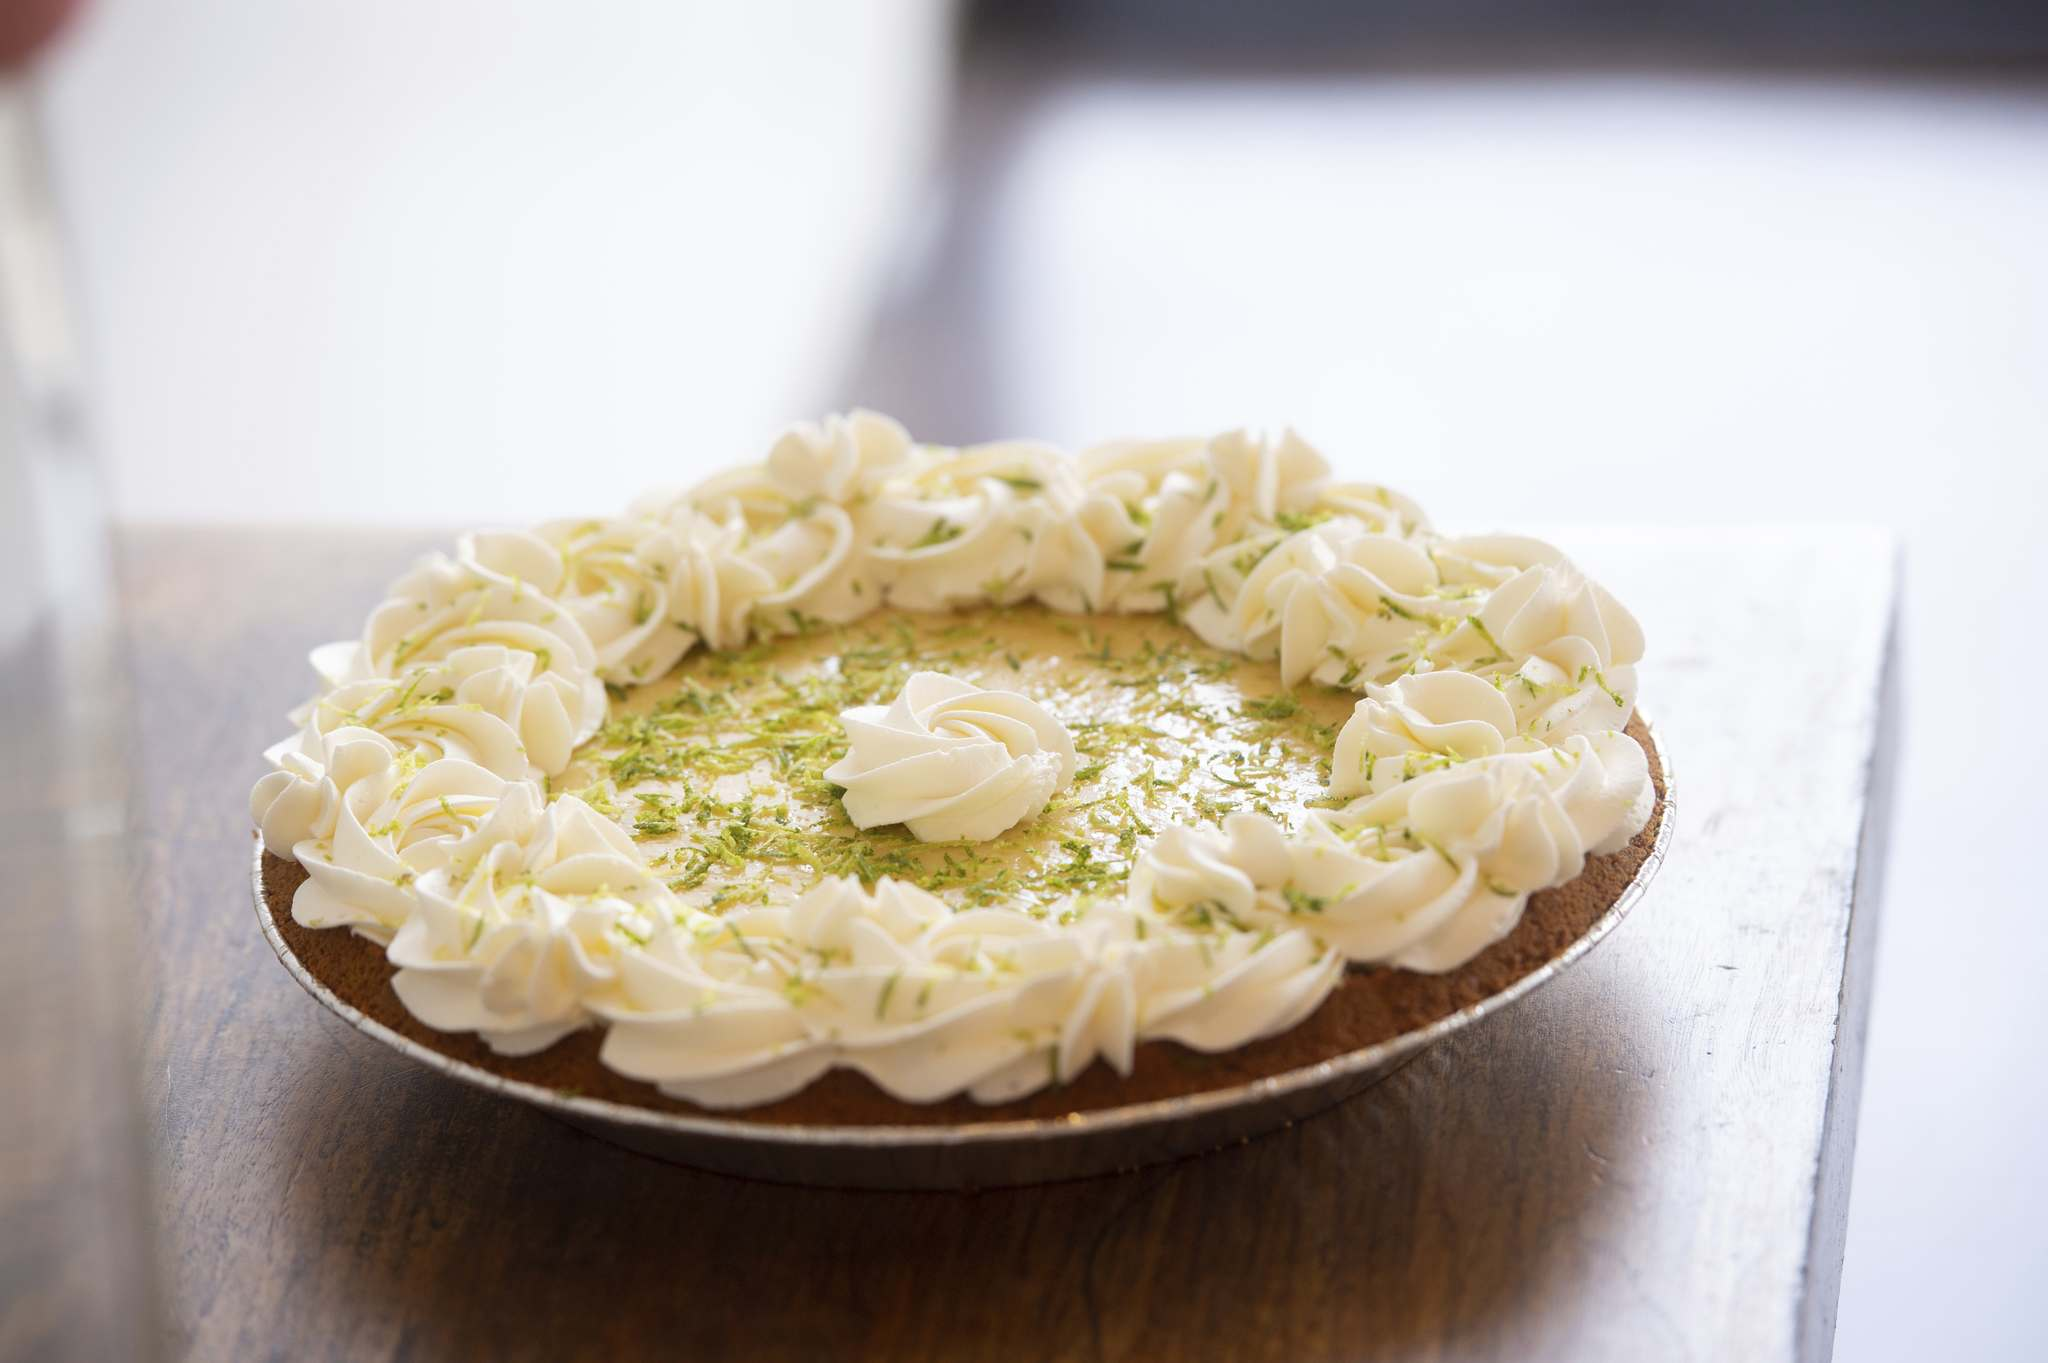 Lilac Bakery's pie menu includes key lime and more than a dozen other varieties. (Mike Sudoma / Winnipeg Free Press)</p>